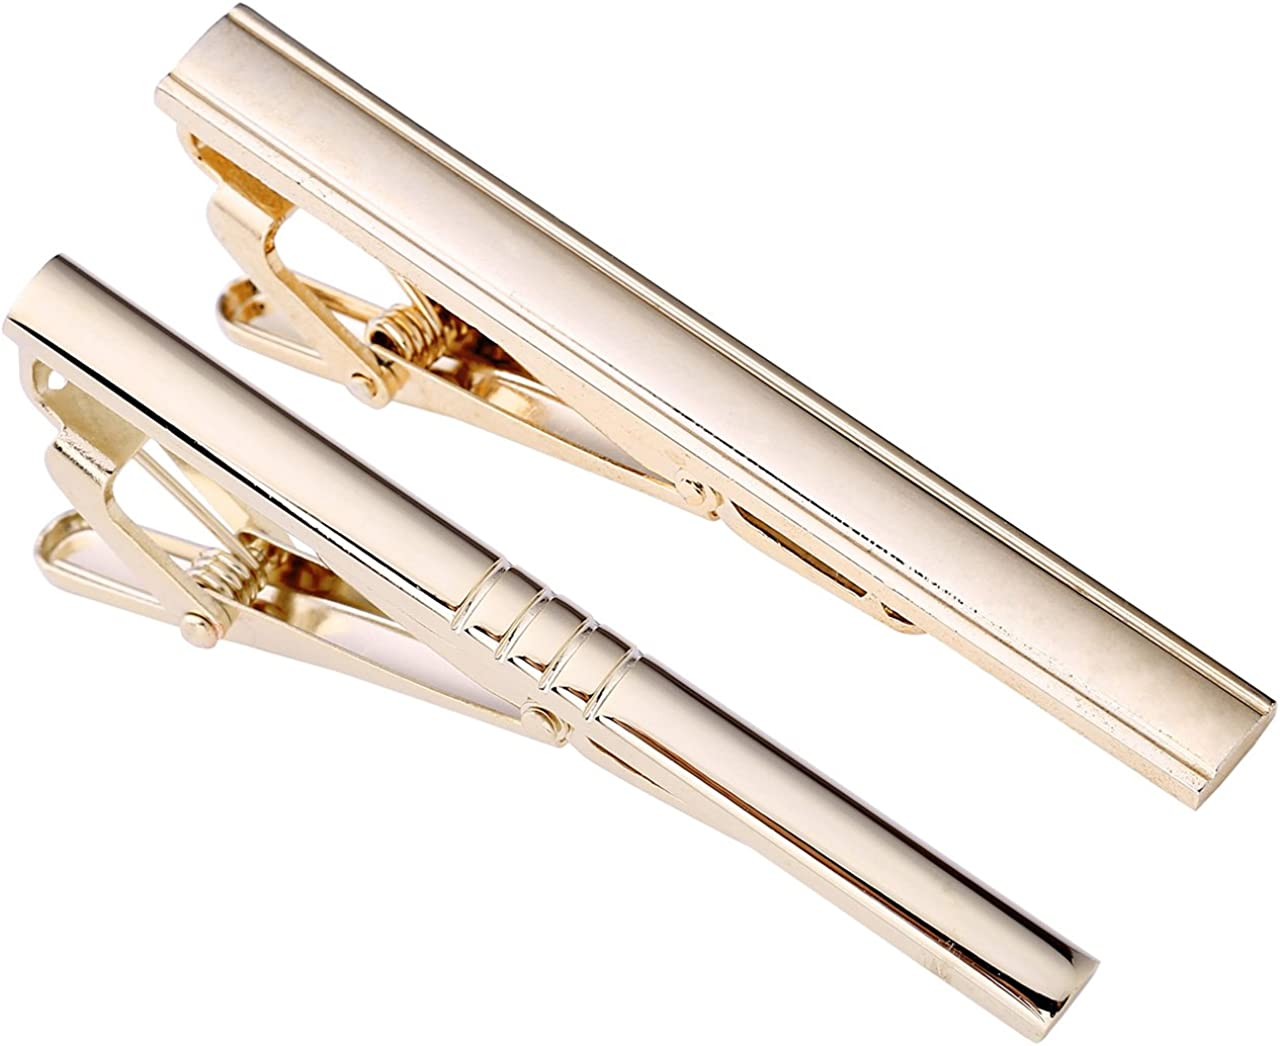 Zysta classic men/'s silver tie pin and cuff links set for weddings and business